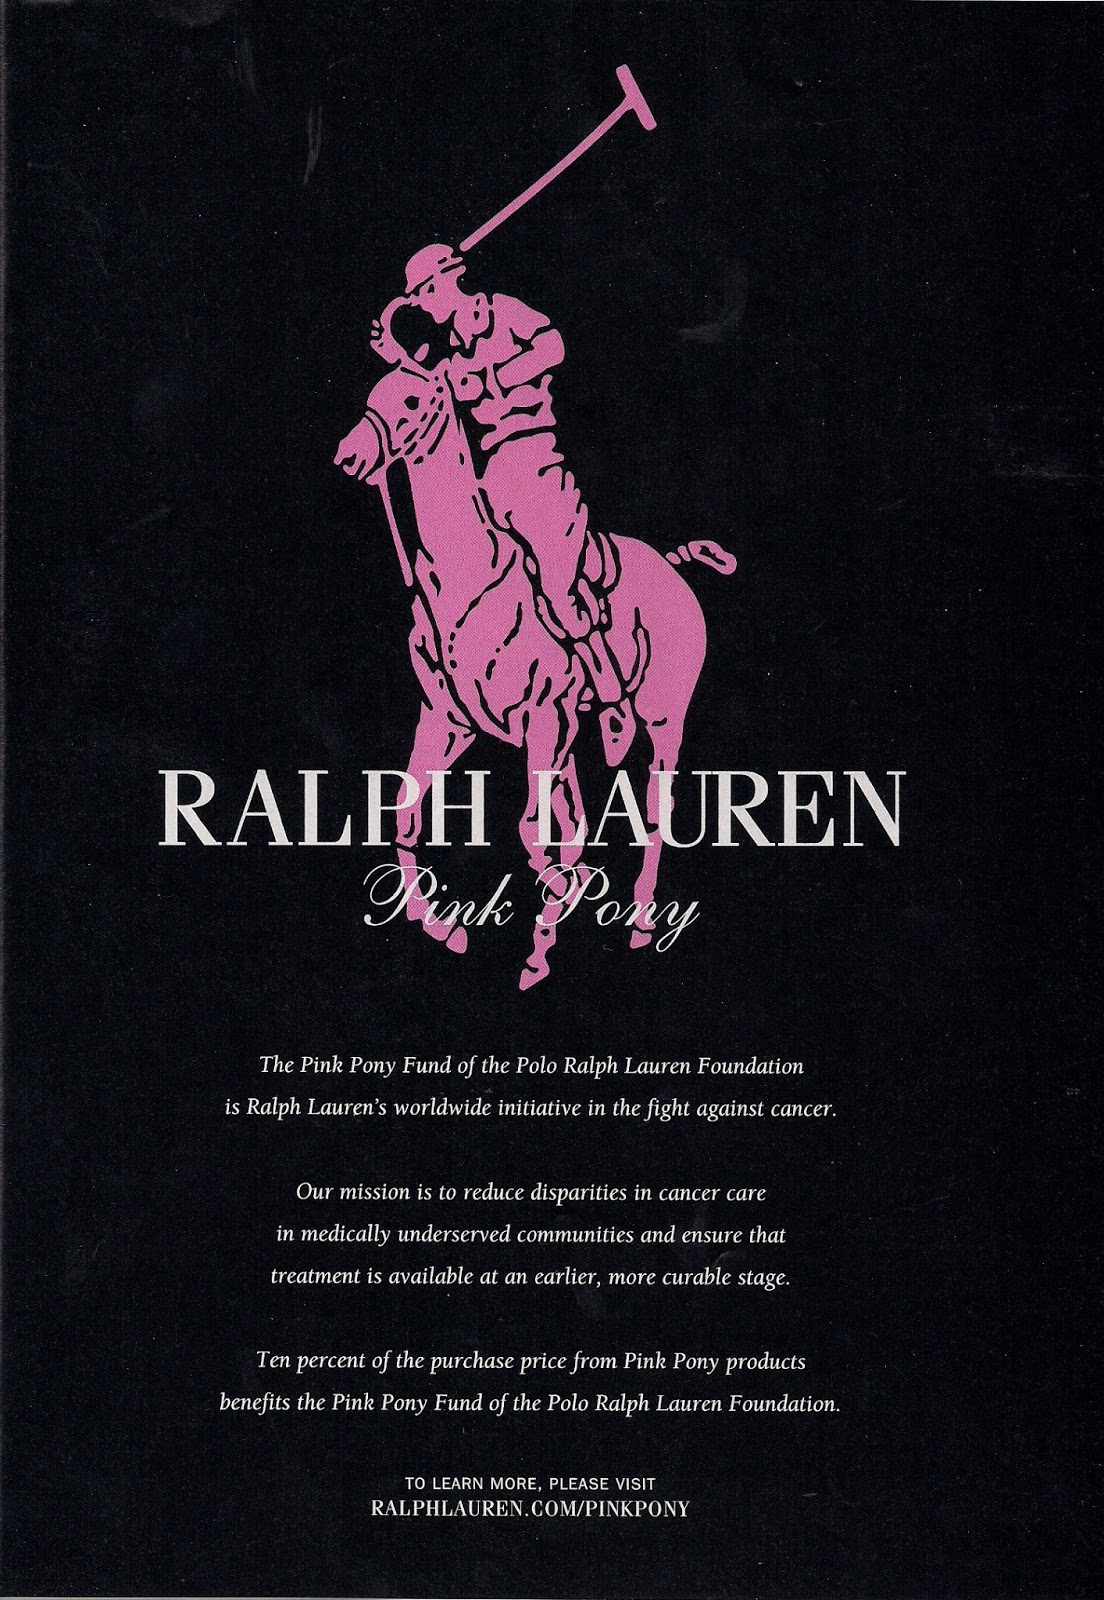 Launched in , the Pink Pony Campaign is Ralph Lauren Corporation's global initiative in the fight against cancer. Originally focused on breast cancer, the Pink Pony Campaign designated a pink version of the iconic Ralph Lauren Polo Pony as its symbol.